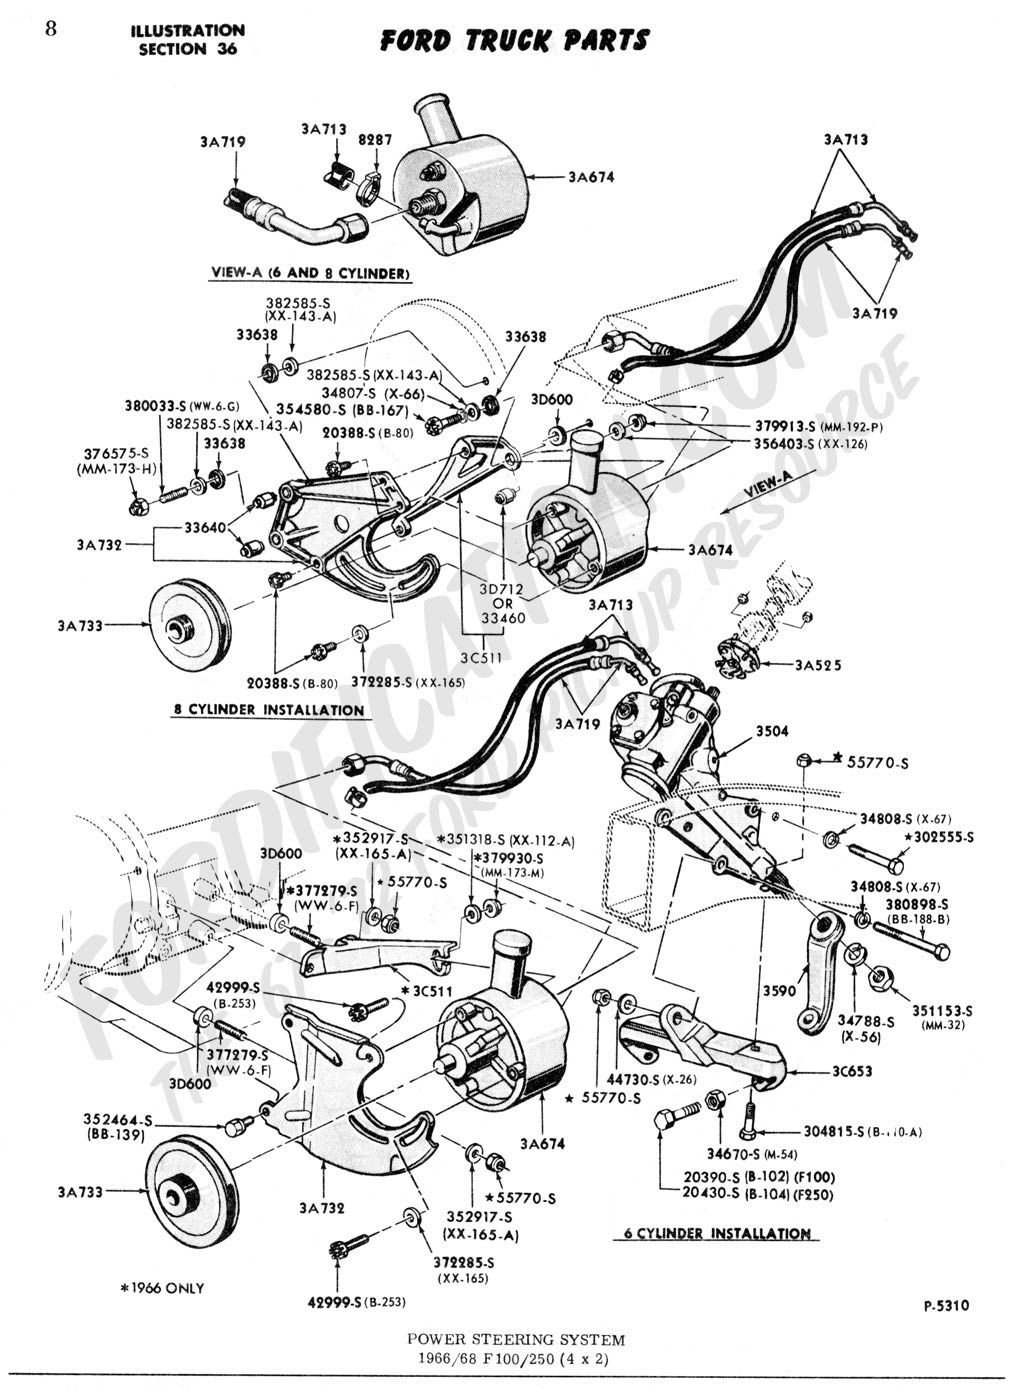 1977 ford truck steering diagram power steering system. Black Bedroom Furniture Sets. Home Design Ideas